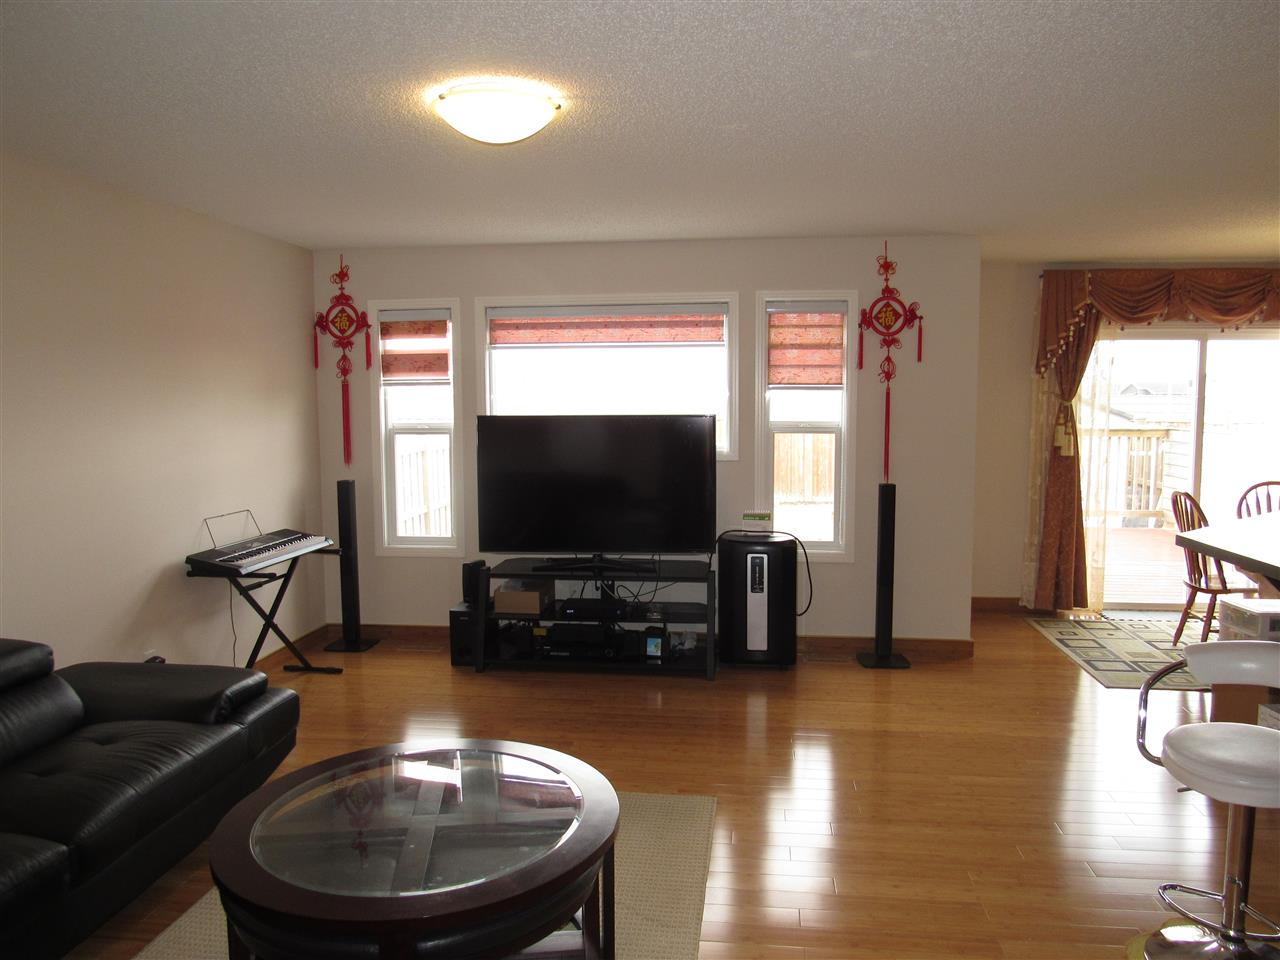 Photo 7: 7904 173 Avenue in Edmonton: Zone 28 House for sale : MLS(r) # E4058384